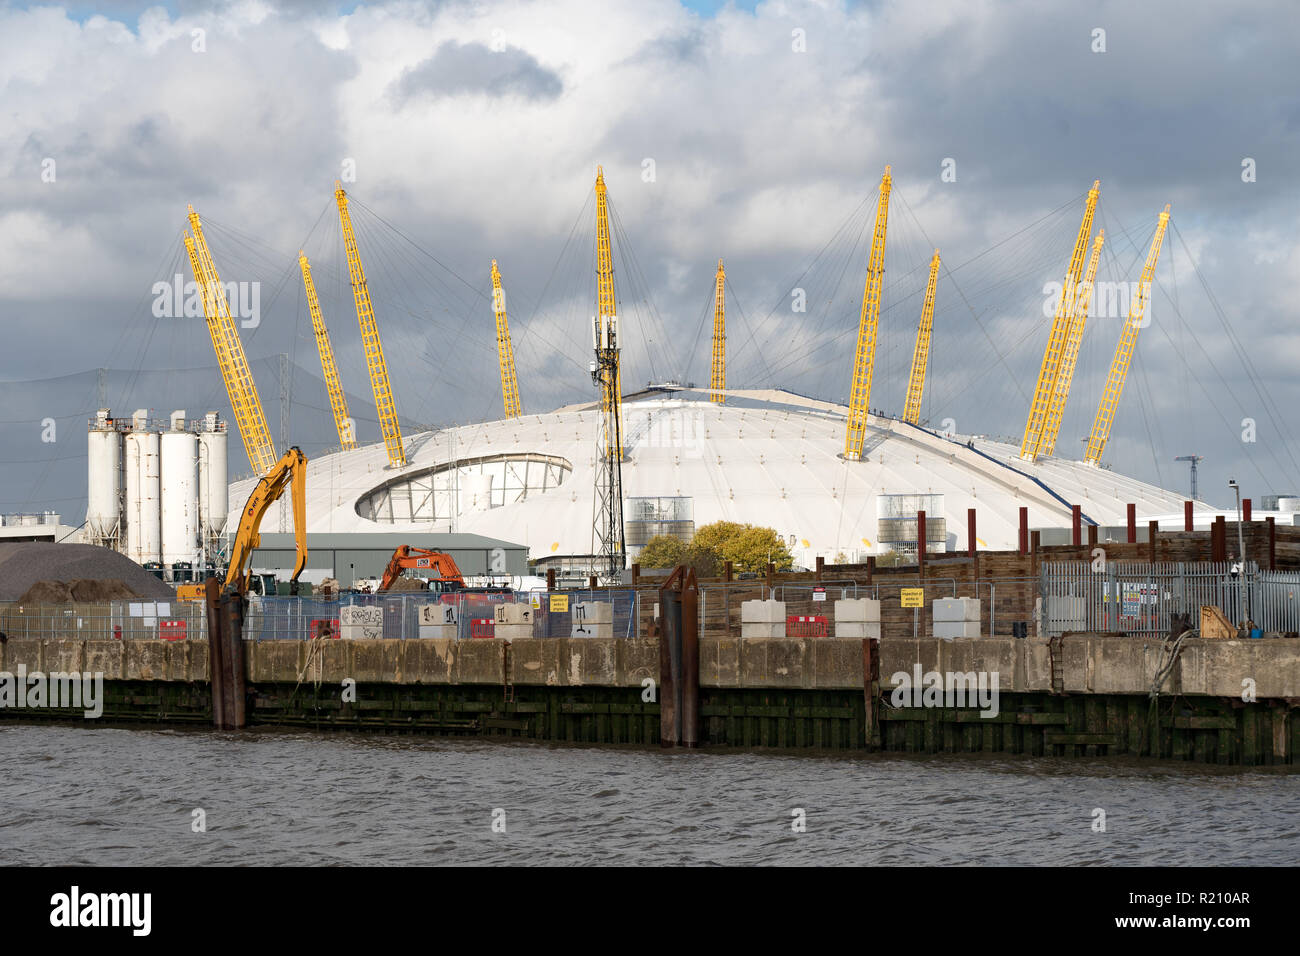 The O2 Arena. From the Open City Thames Architecture Tour East. Photo date: Saturday, November 10, 2018. Photo: Roger Garfield/Alamy Stock Photo